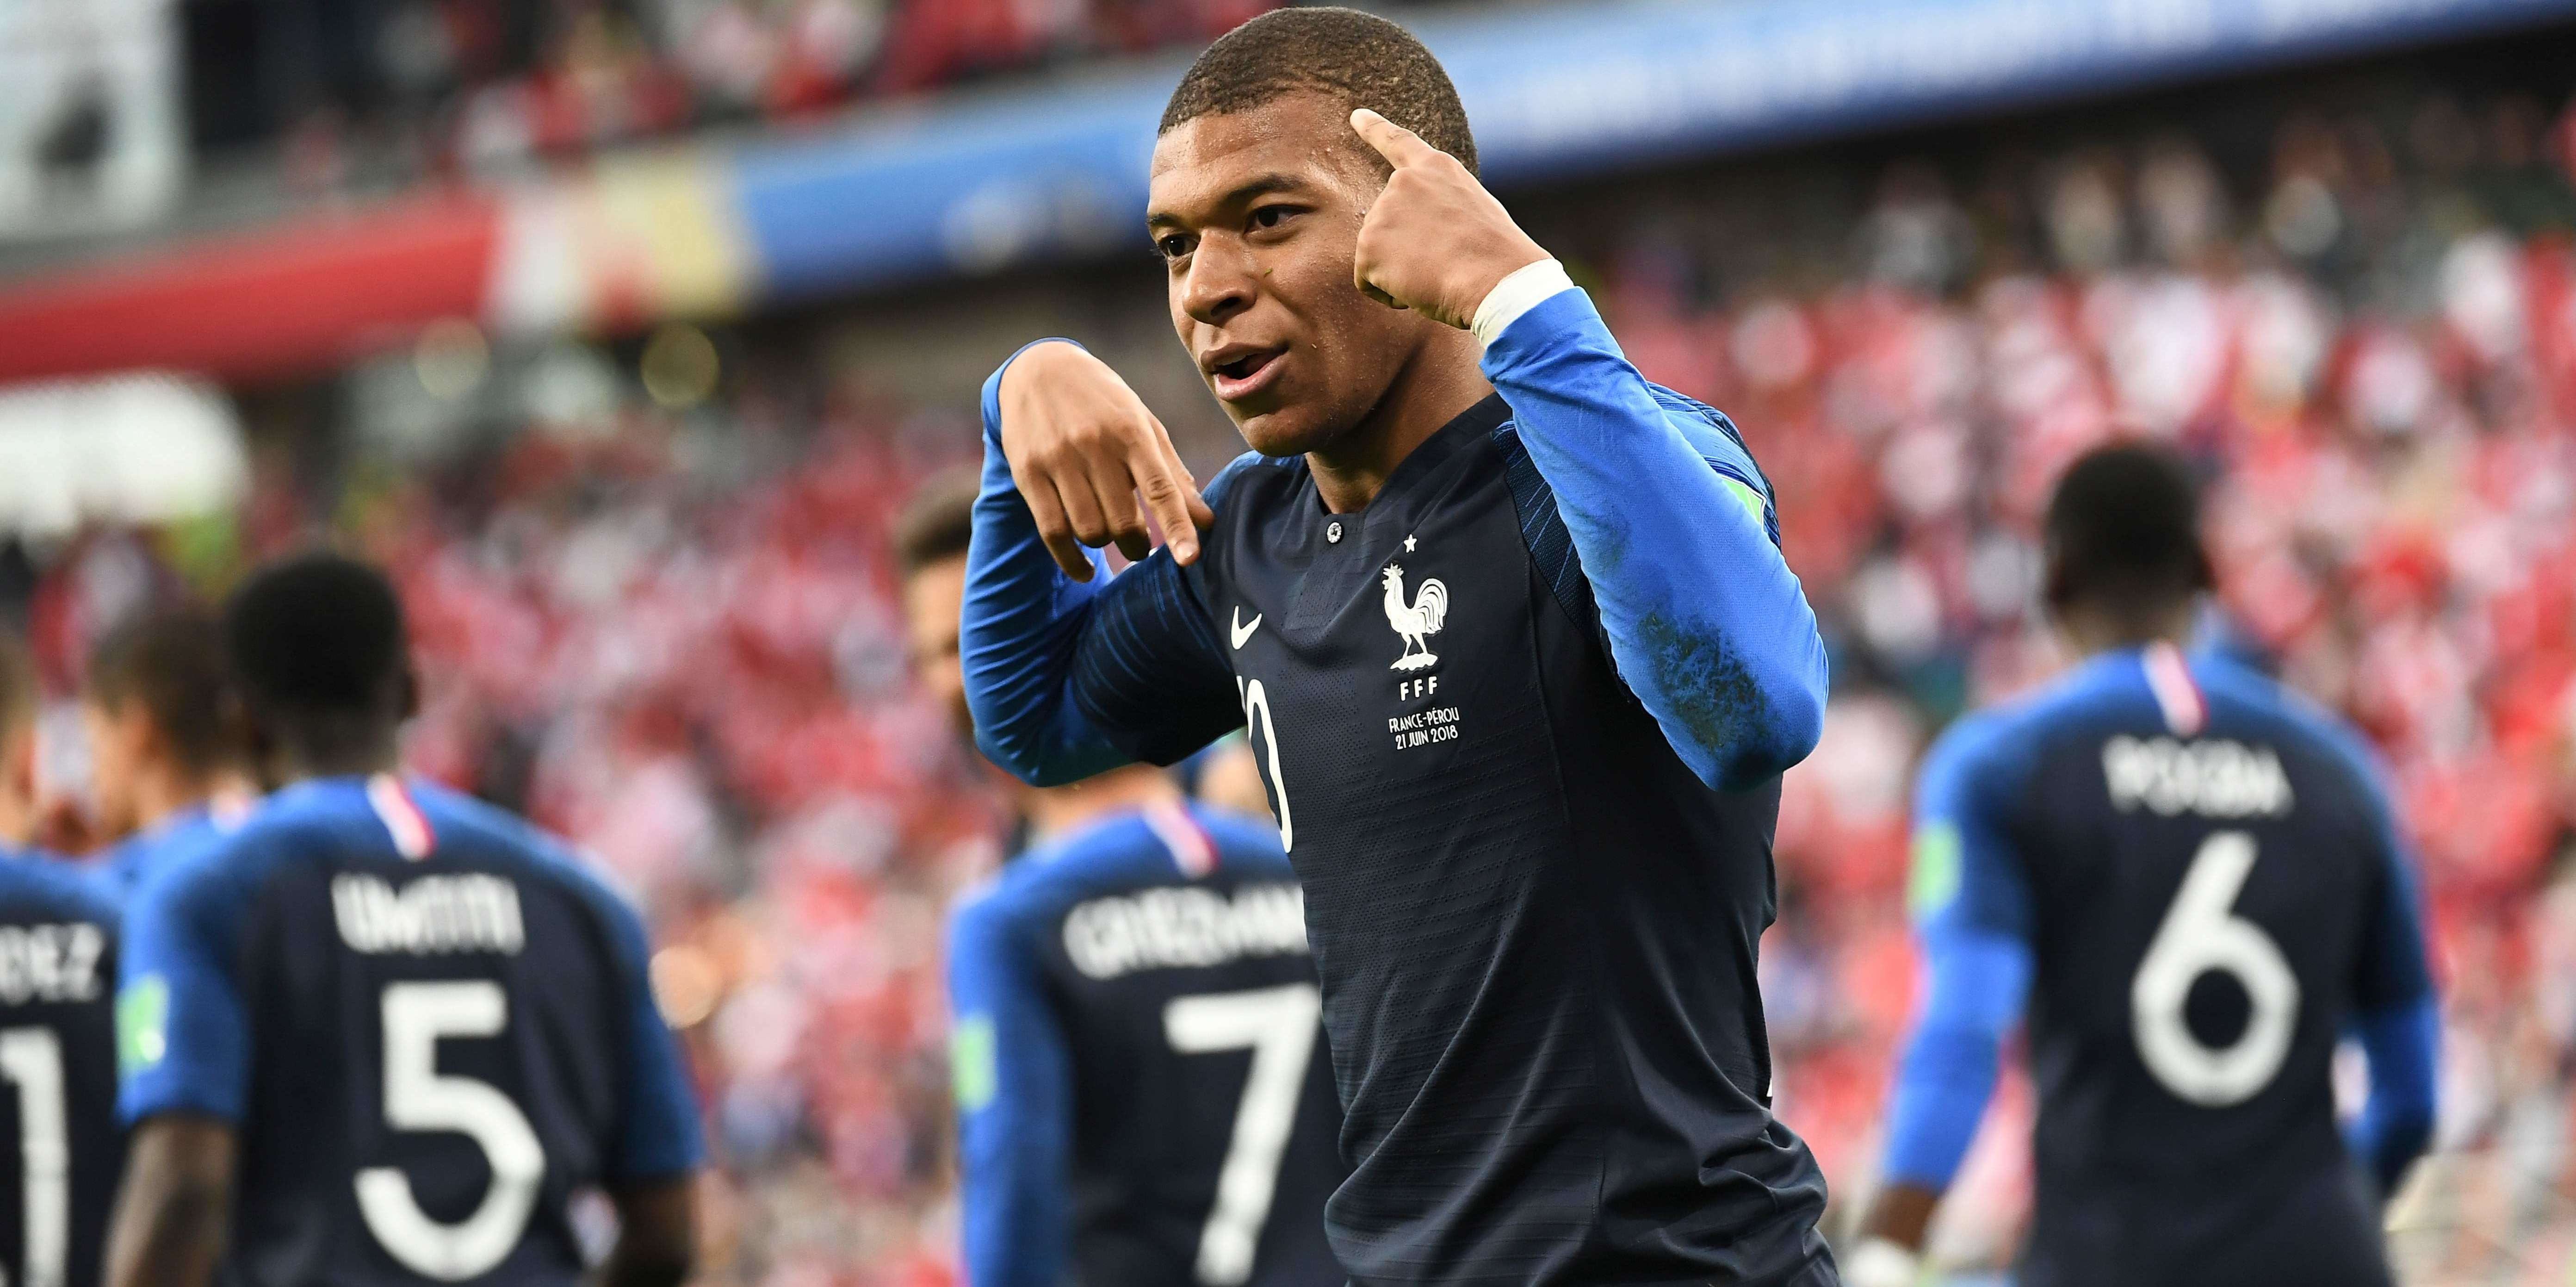 Coupe du monde 2018 revivez la victoire de la france face au p rou - France mexique coupe du monde 2015 ...